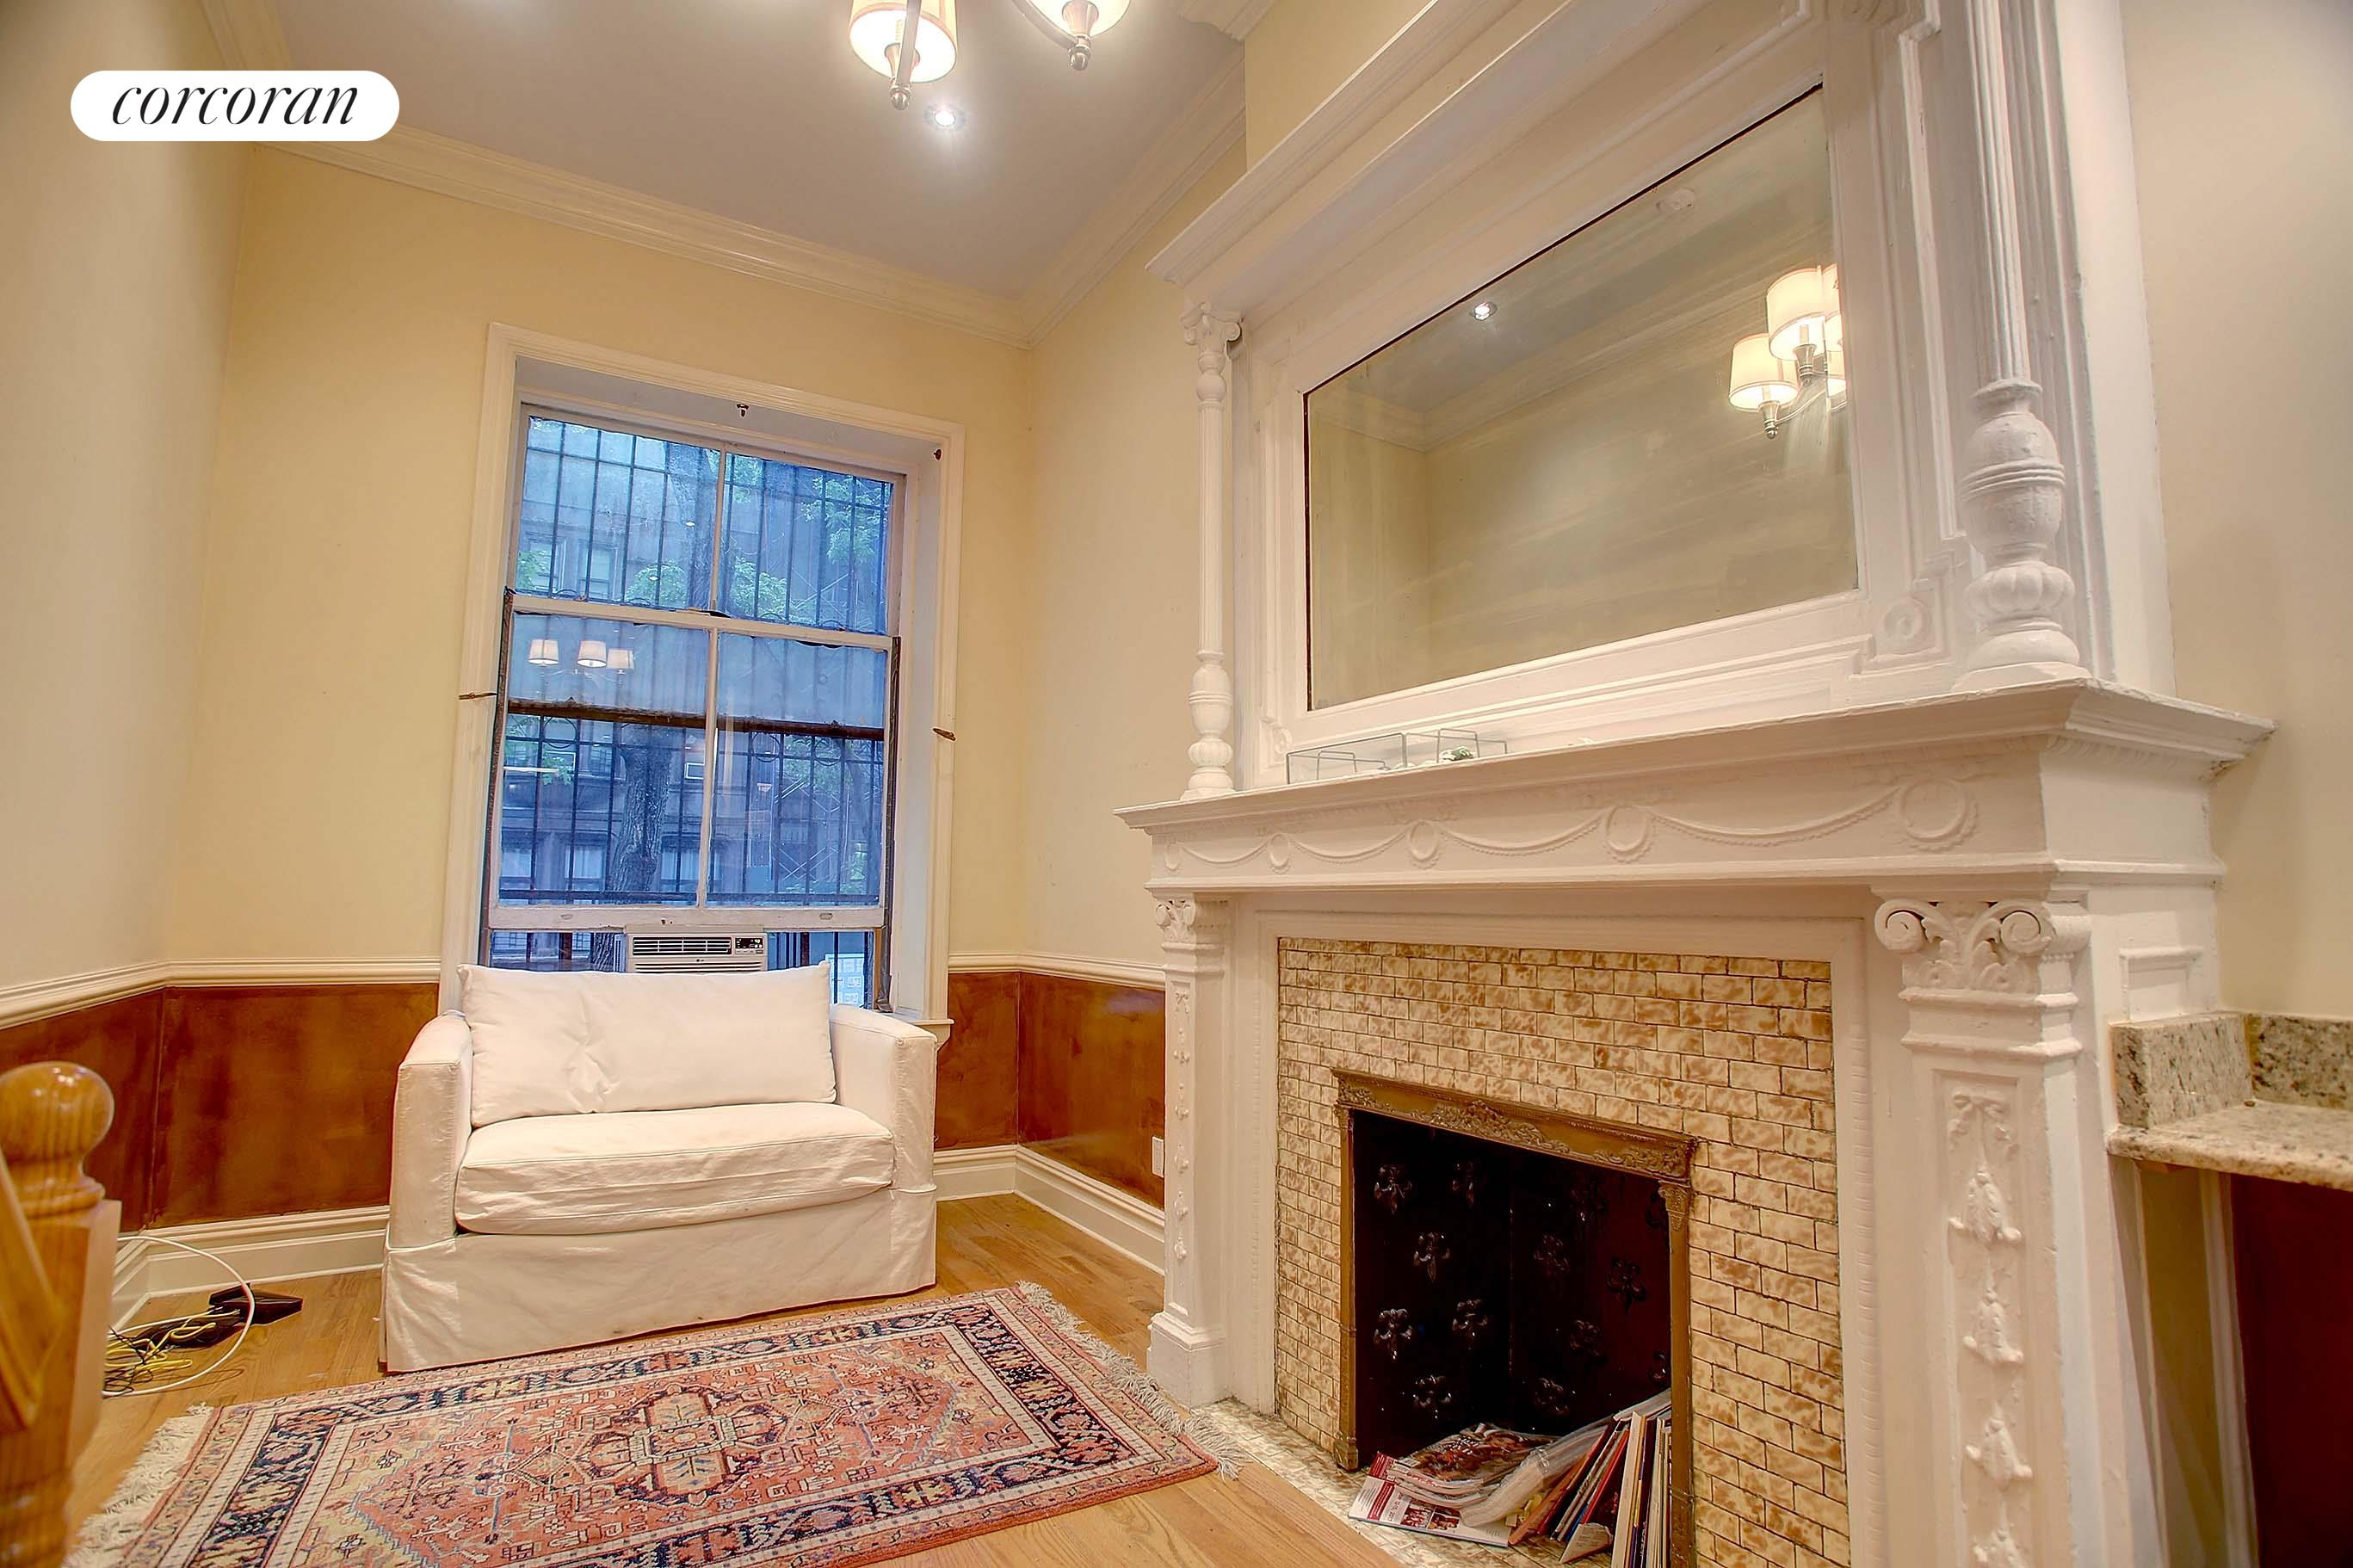 47 West 90th Street 3 Upper West Side New York NY 10024